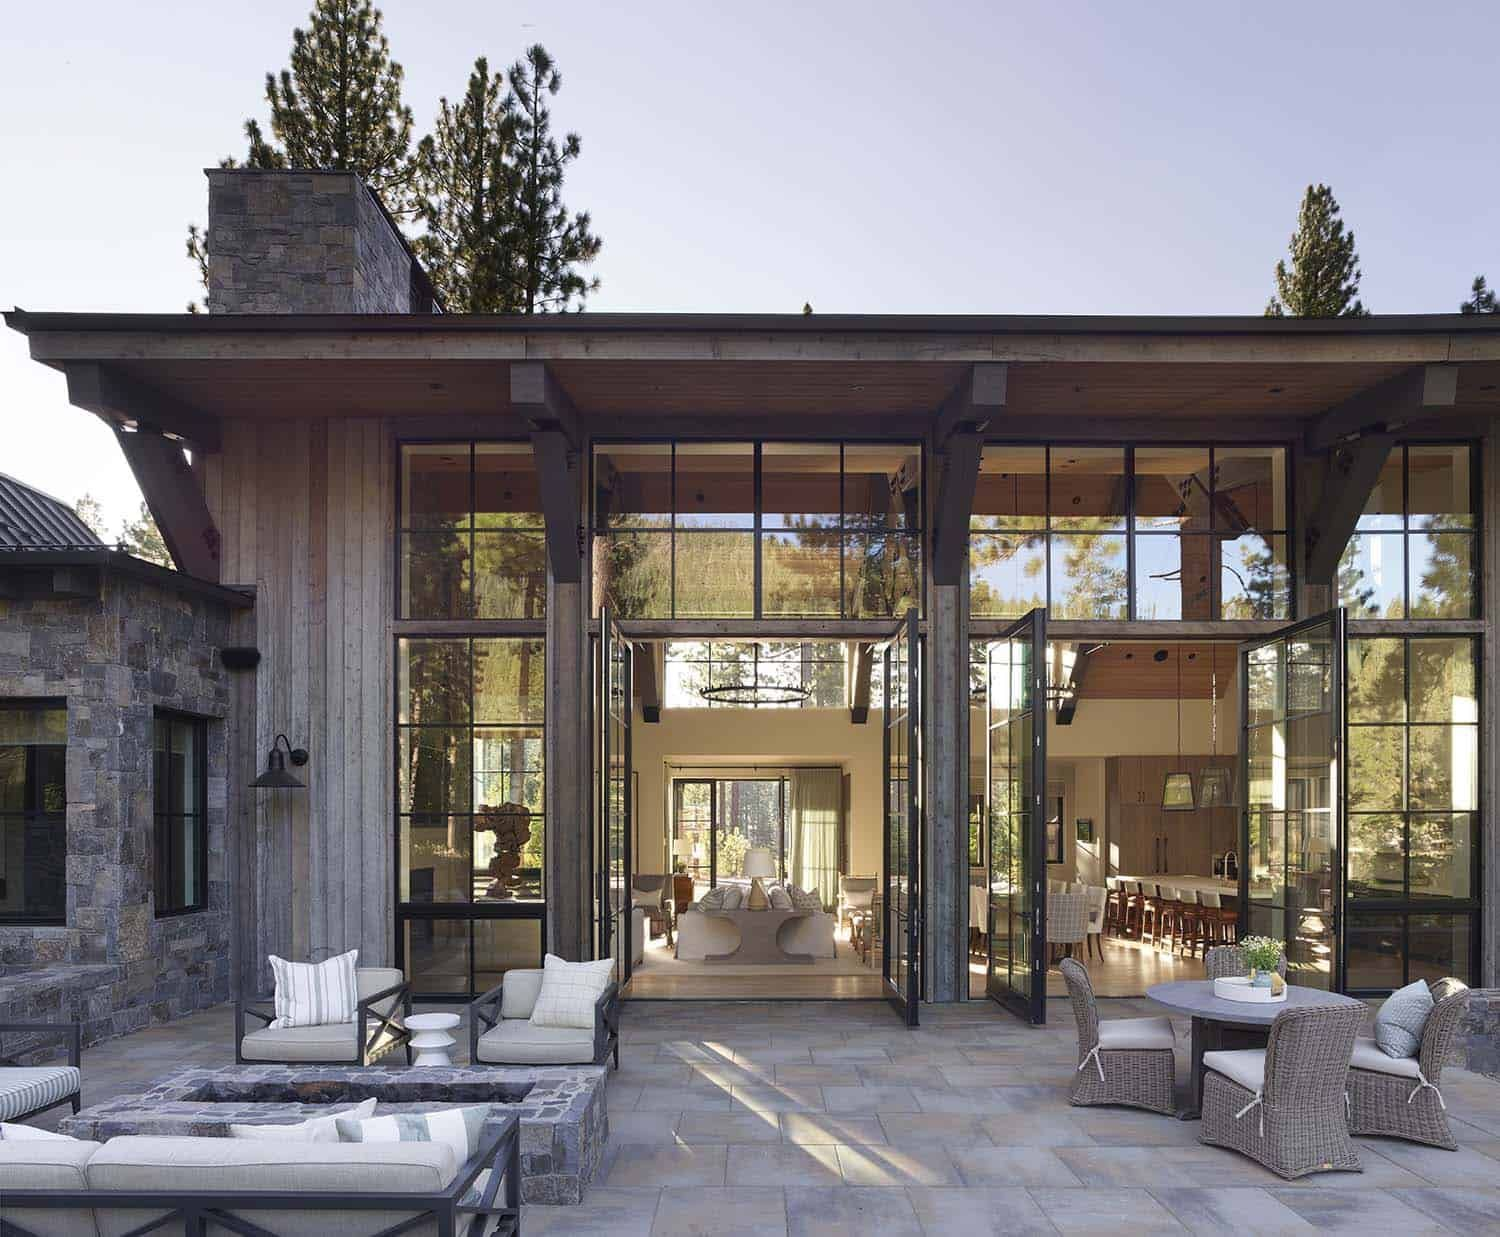 Insanely beautiful mountain modern home in the Sierra Mountains